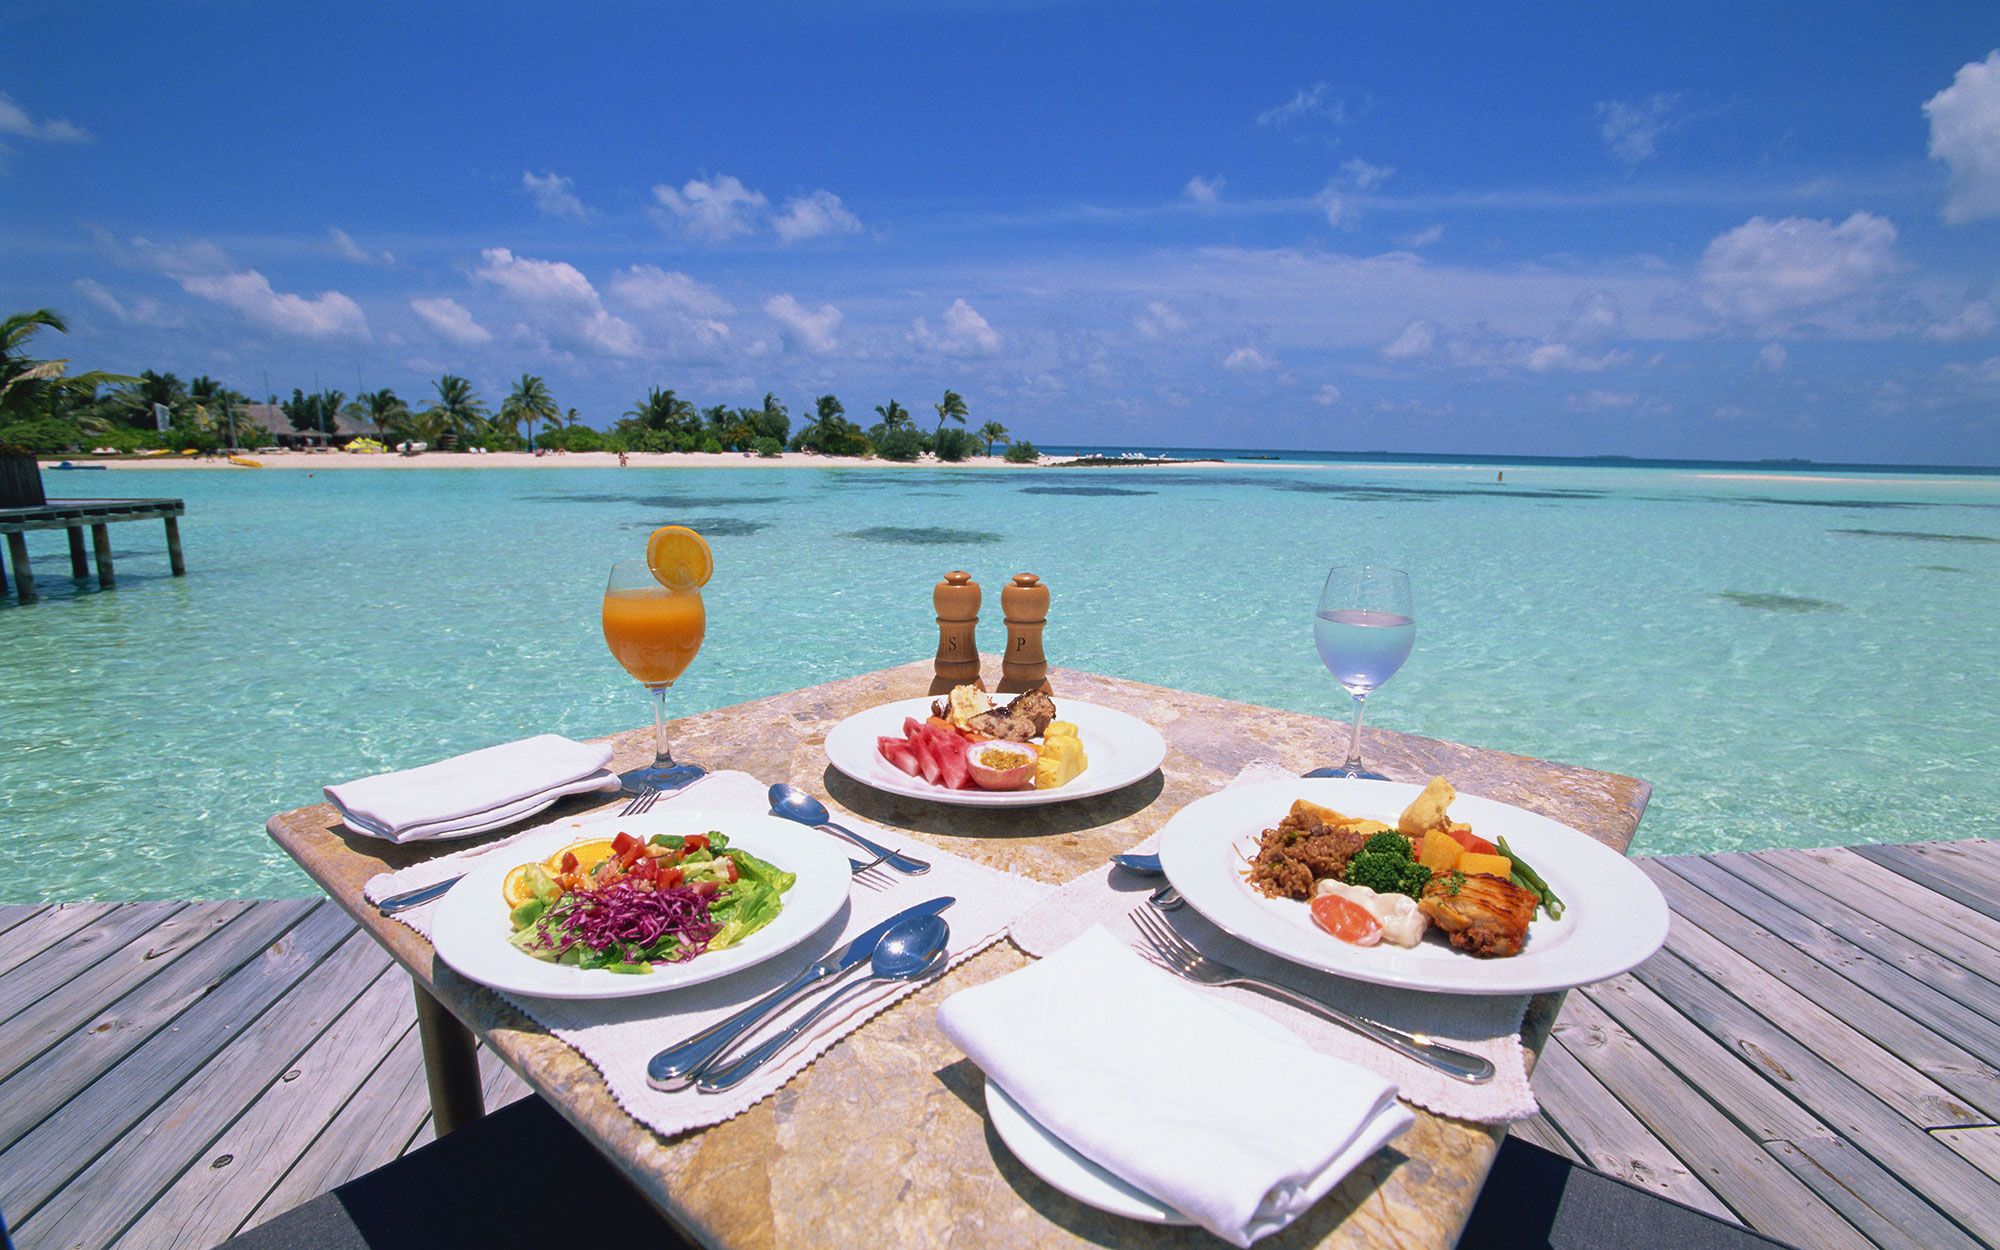 Best Islands for Food: No. 6 Maldives